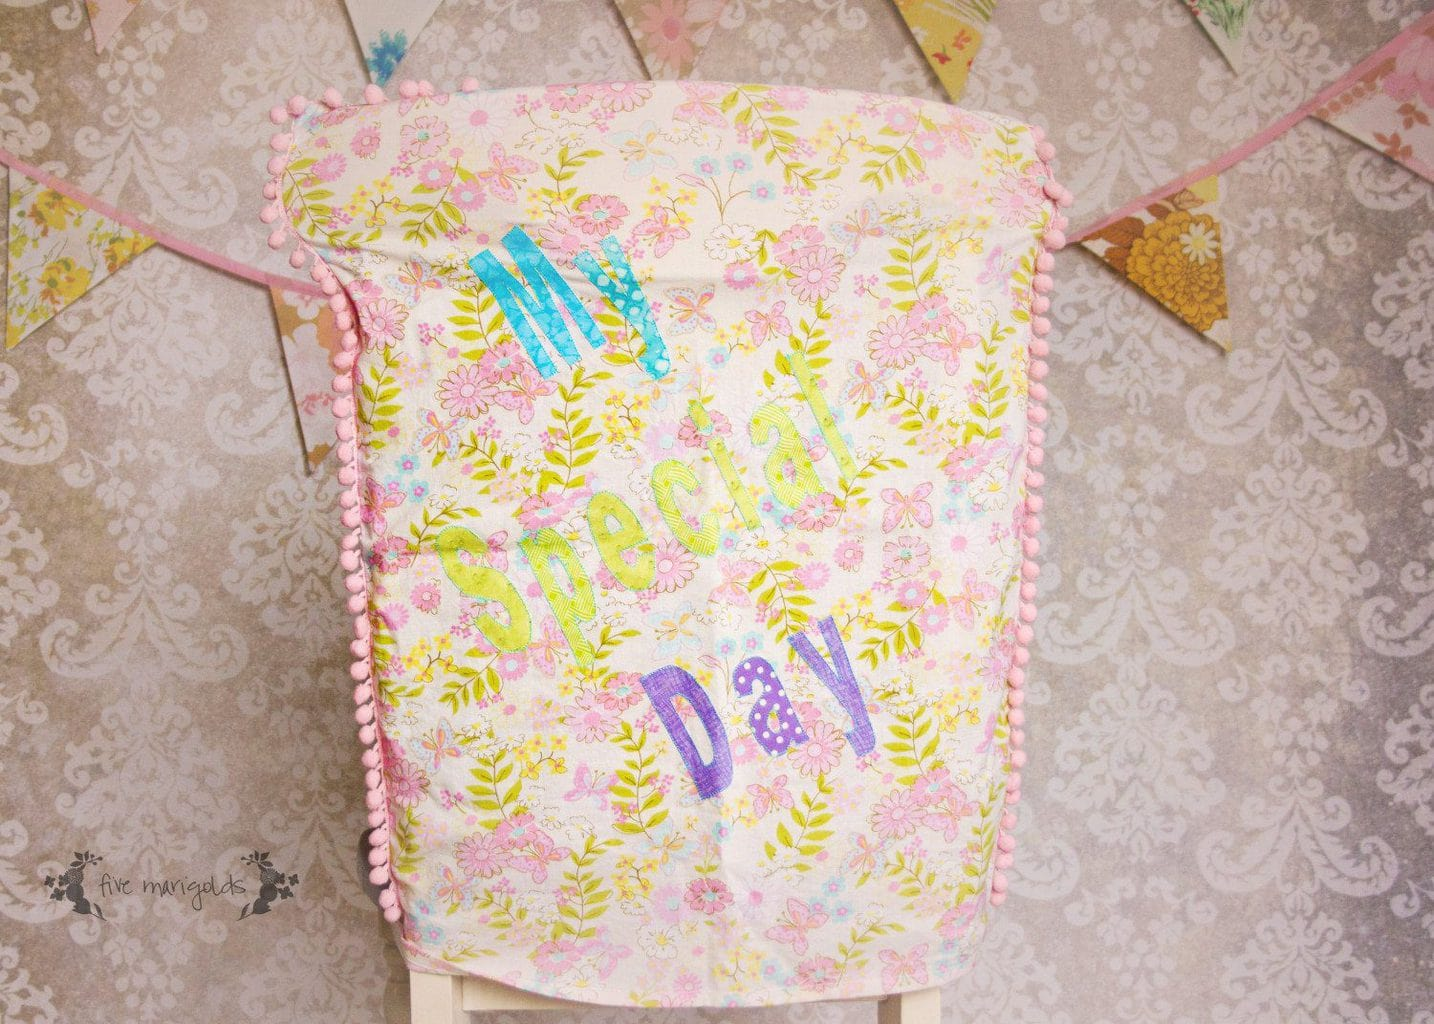 Baby Girl Bow Birthday Party Chair Cover | Five Marigolds